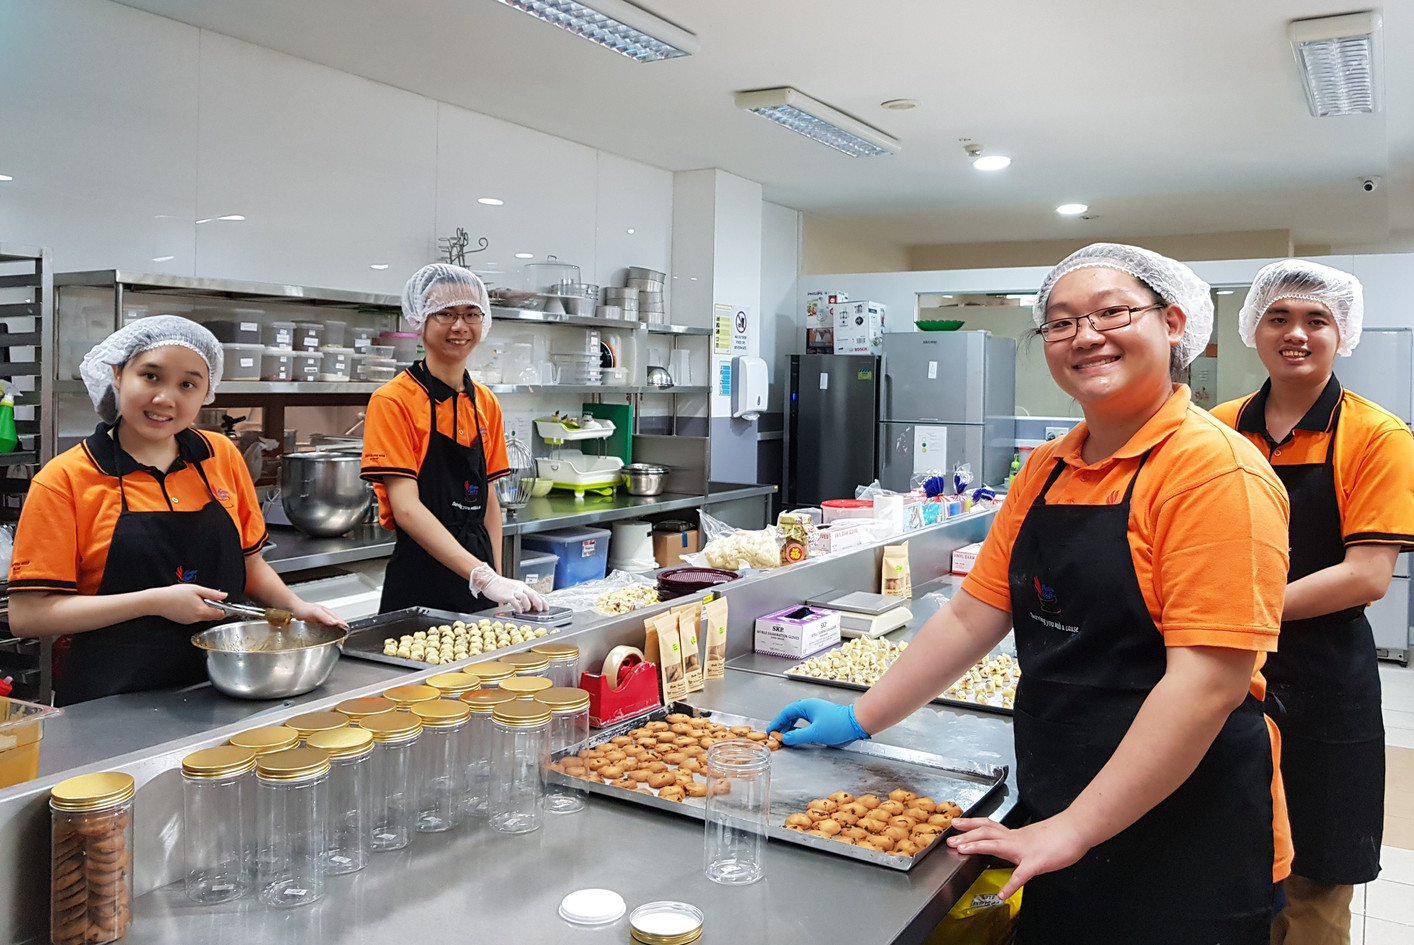 At Metta Café, bakers also learn how to make mooncakes with white lotus paste and melon seeds.